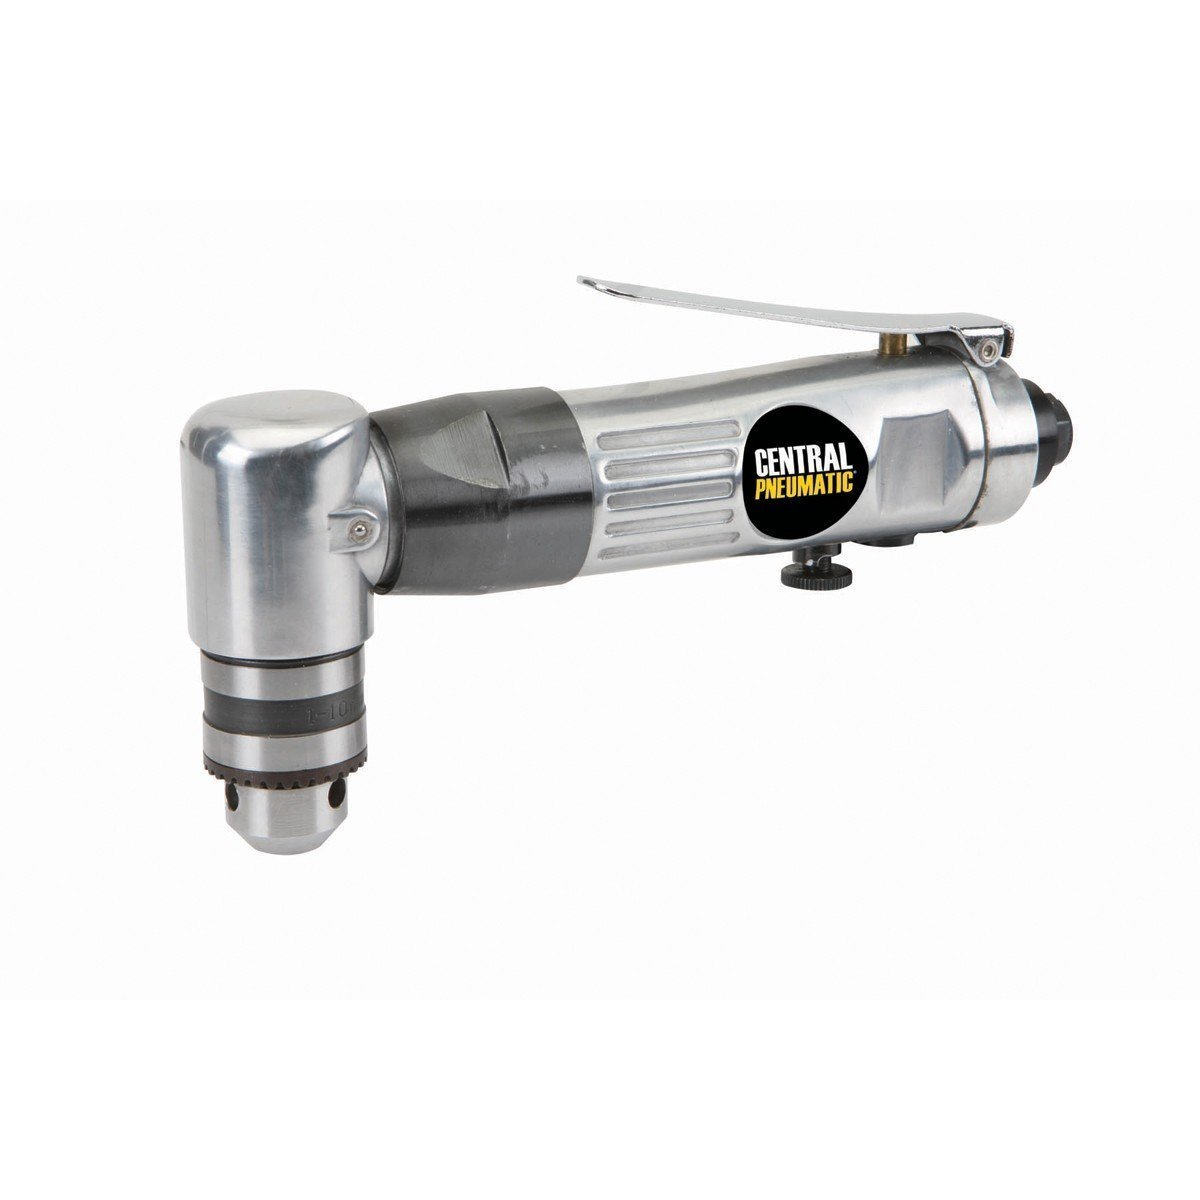 Central Pneumatic 3/8-Inch Air Angle Drill